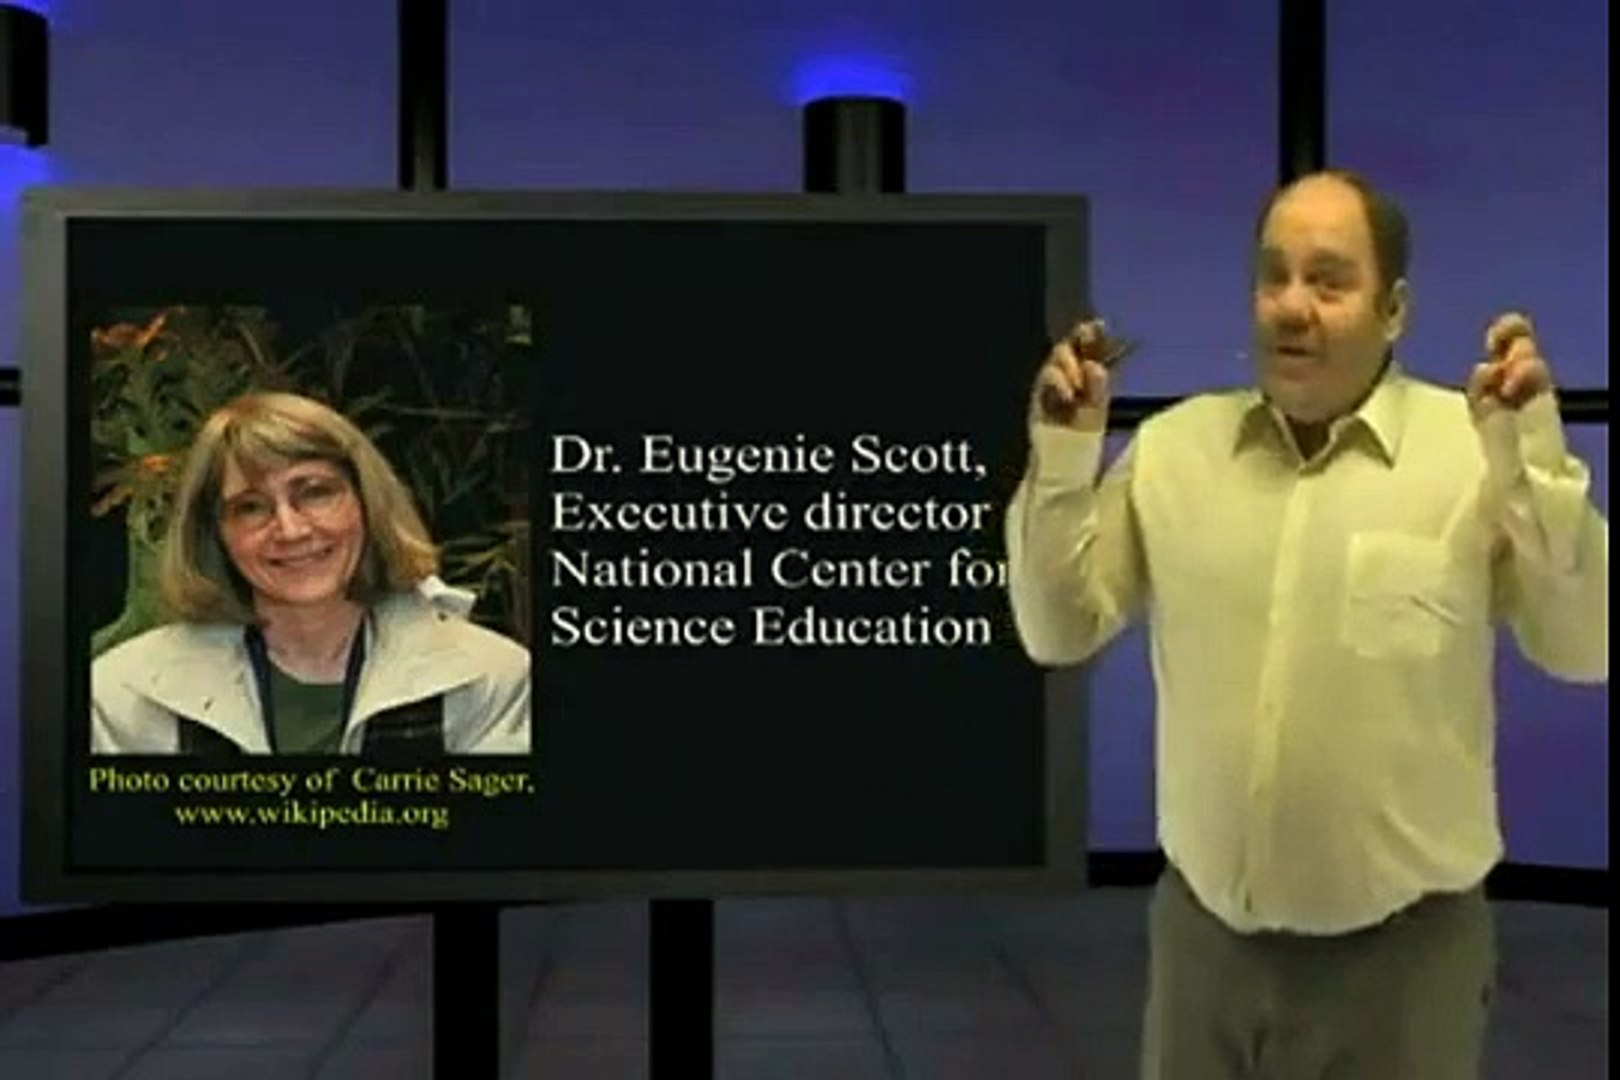 National Science for Science Education, Anti-Science and Anti-Education